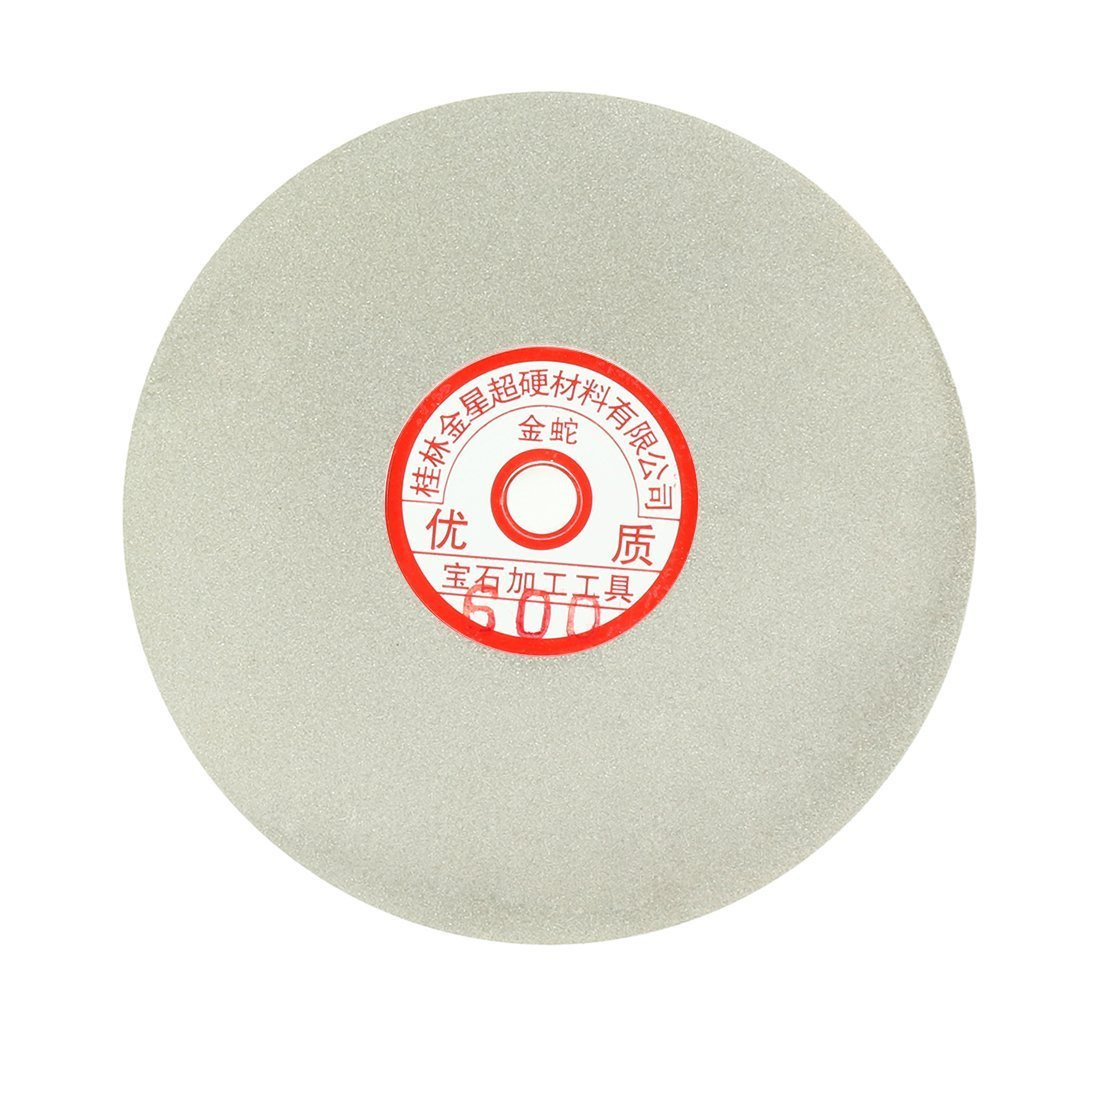 Sourcingmap 6-inch Grit 1200 Diamond Coated Flat Lap Wheel Grinding Sanding Polishing Disc